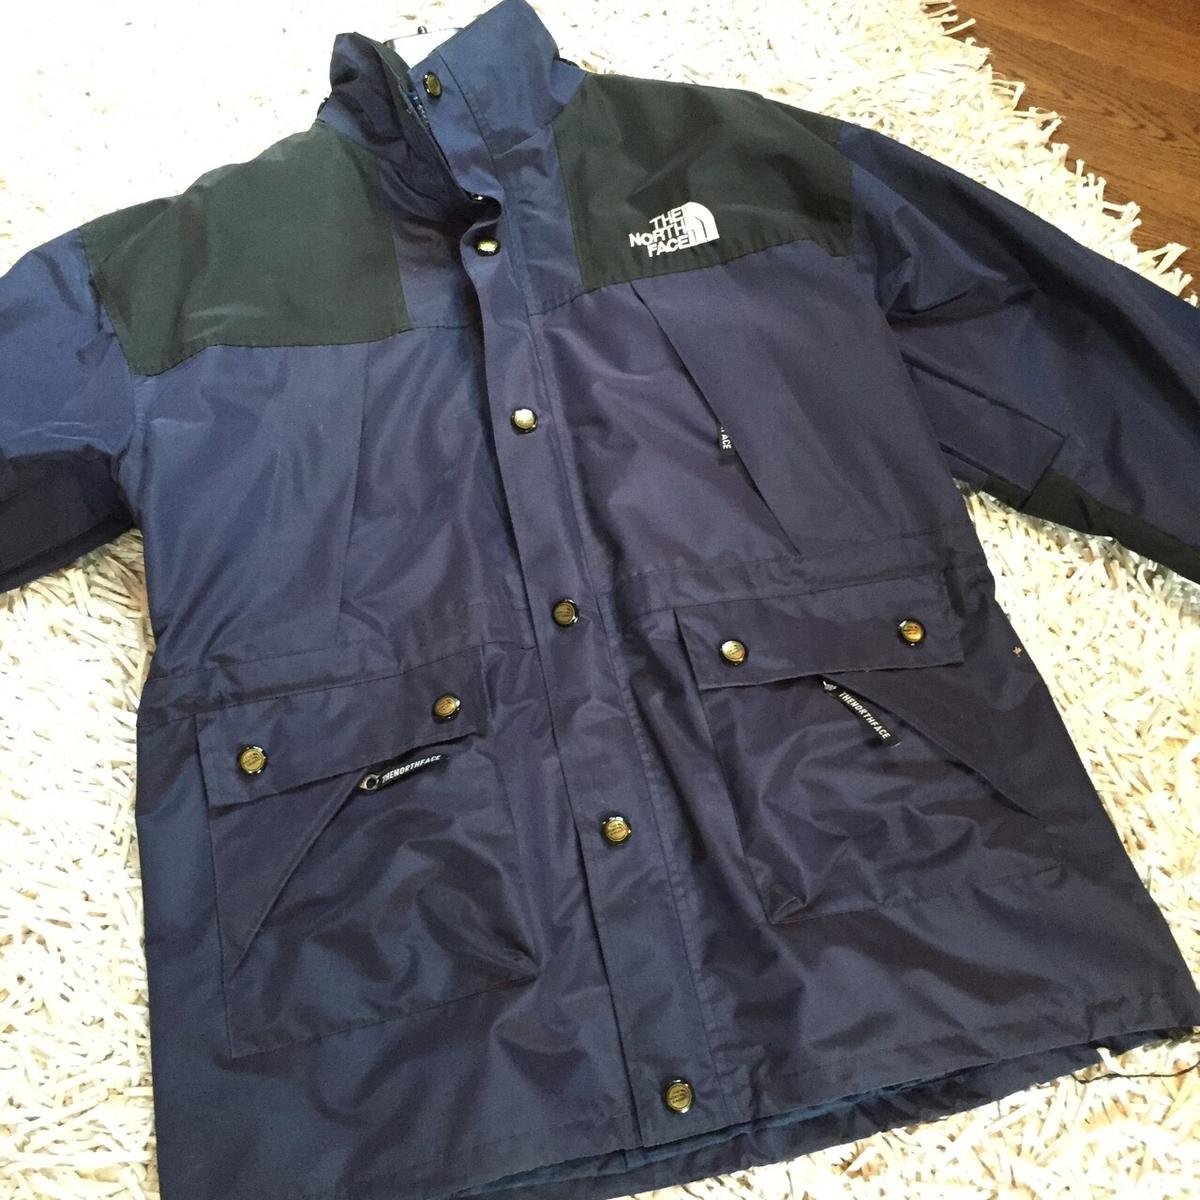 implicit while Frugal  Impermeabile giacca a vento The North Face in 22010 Moltrasio for €55.00  for sale | Shpock